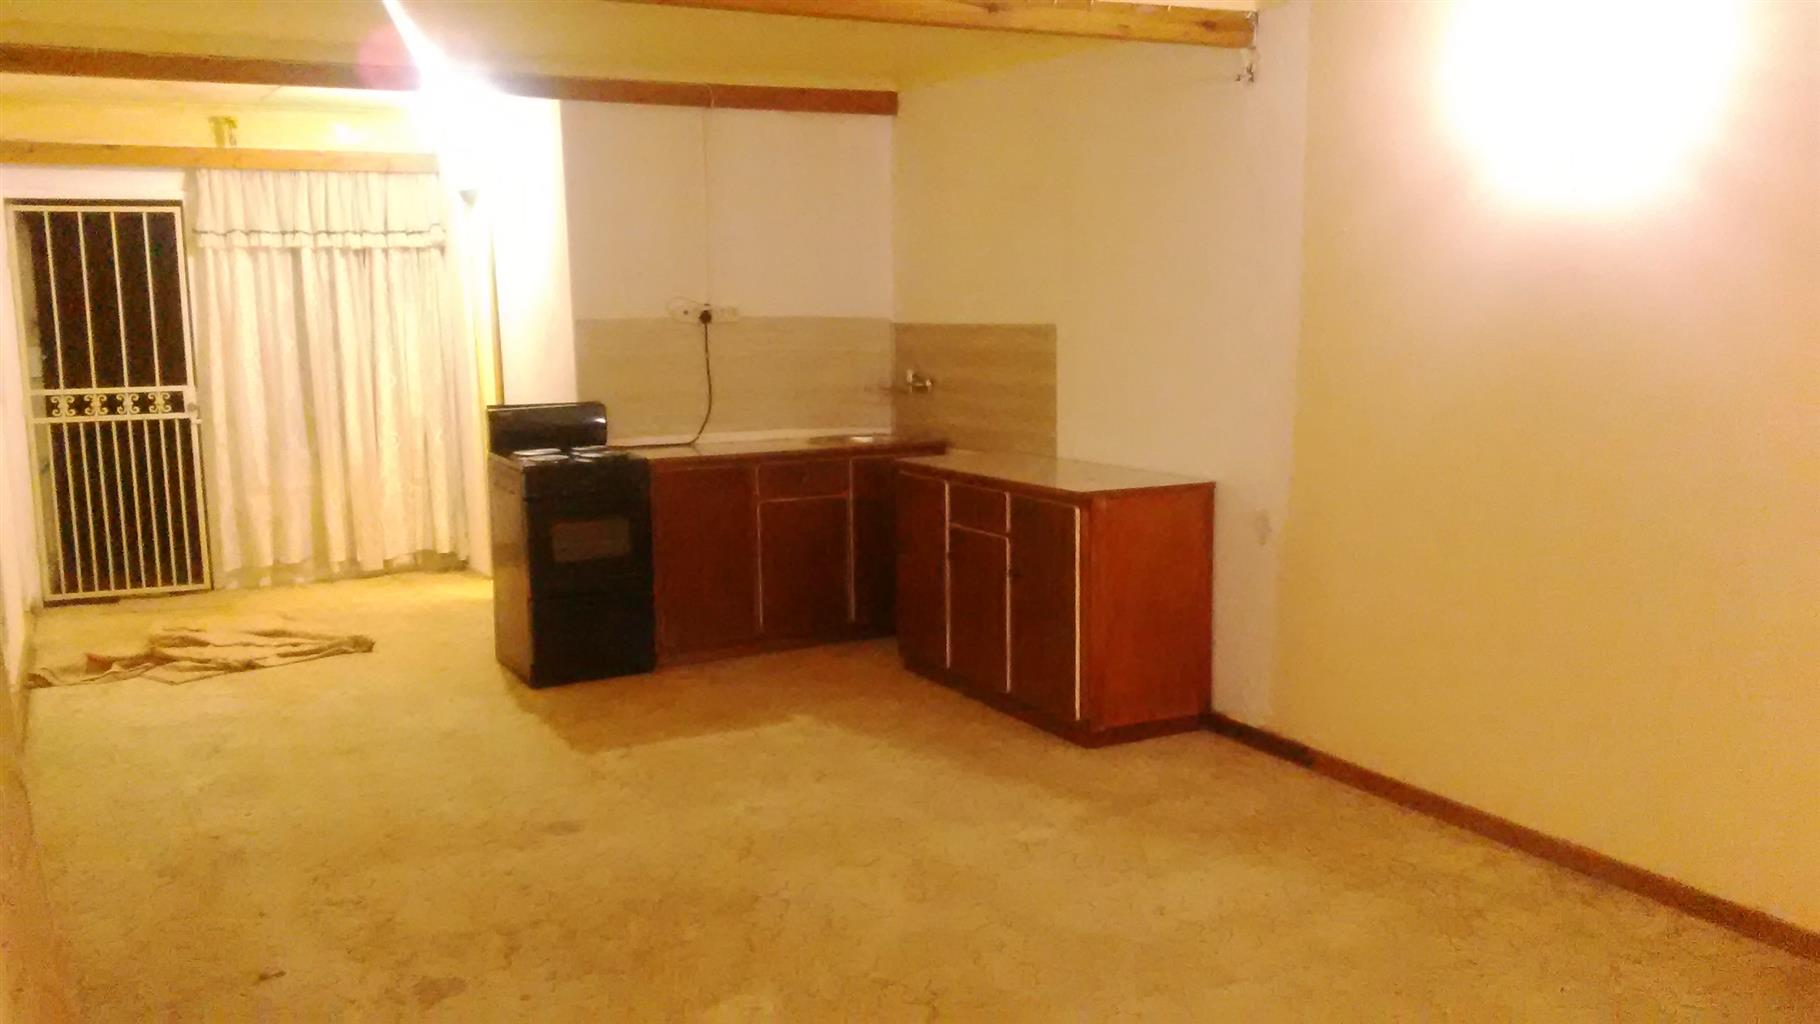 Rooms for rental at Kwaggasrand Pta west